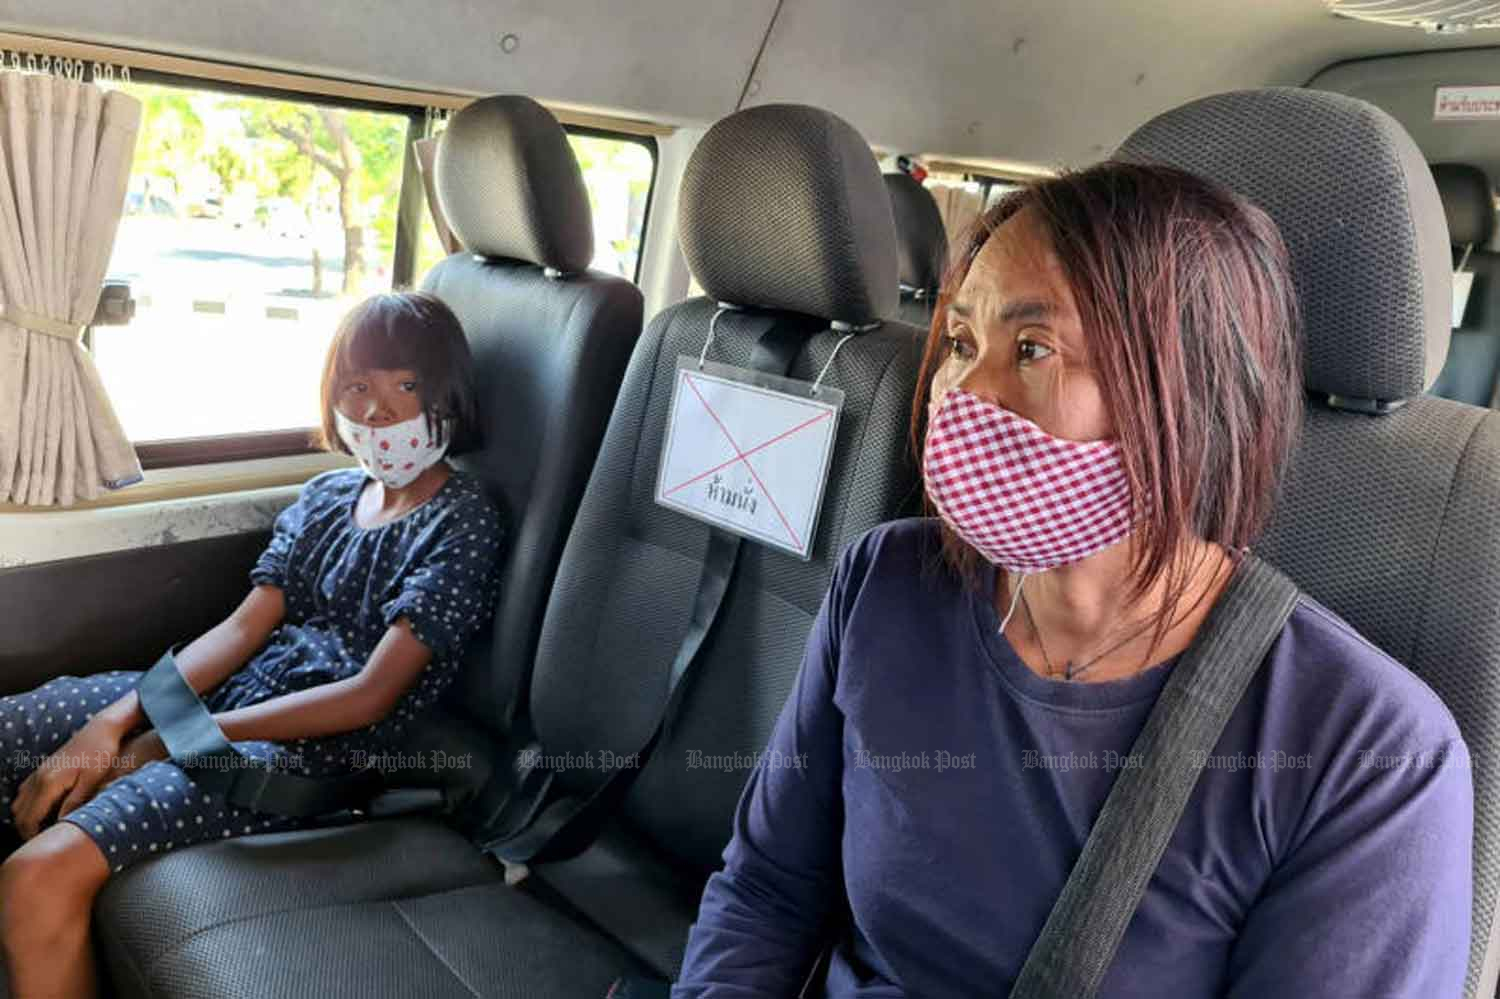 Interprovincial travellers are forced to comply with social distancing in a passenger van in Nakhon Ratchasima province on Wednesday. (Photo: Prasit Tangprasert)